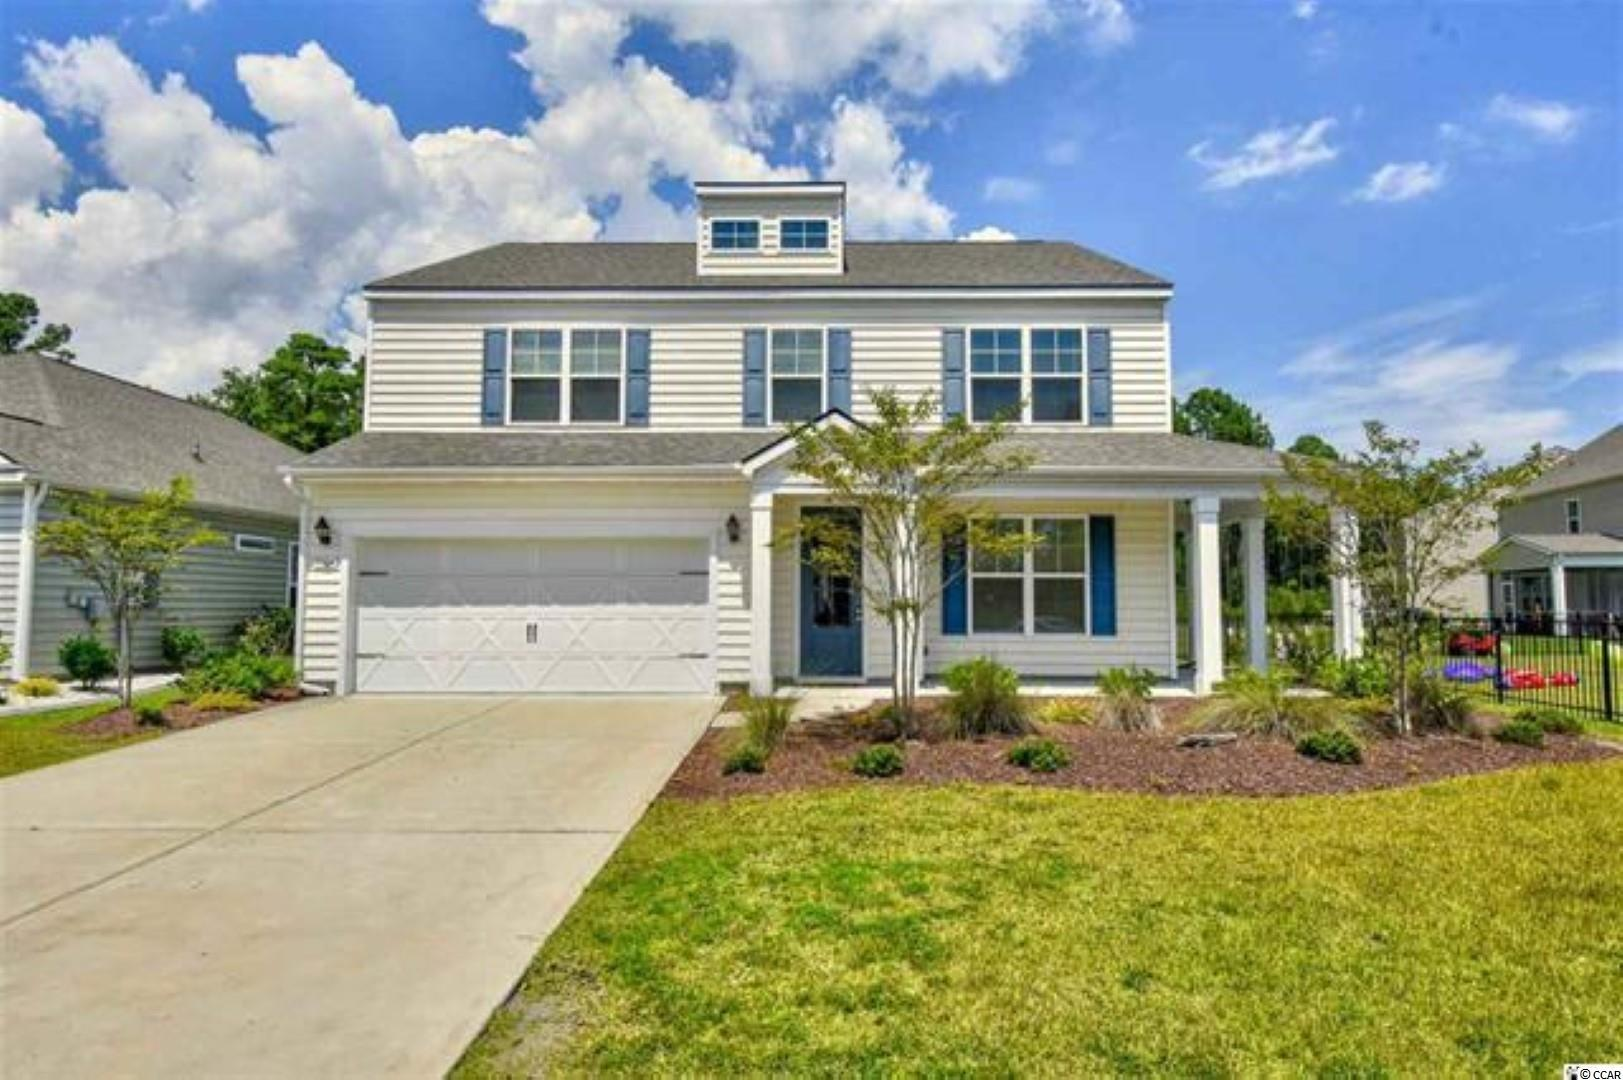 Come check this 5 bed 3.5 bath home in the convenient and friendly neighborhood of The Farm. This recently built home is located at a quit cul-de-sac offering you peace and quiet. This home includes everything you've been looking for, from a large kitchen to a living, combined and separate dining and a Carolina room. The kitchen features one of the largest islands, stainless steel appliances and endless cabinetry. Need more space for your work or family, check out the upstairs with 4 bedrooms and a very large loft for whatever your needs may be. Located in one of the largest lots, this house offers plenty of back yard and backs up to the woods to give you even more privacy. This home is within minutes from everything Myrtle Beach has to offer and now the International Drive is open, within minutes from Conway. Enjoy the convenience of being within 10 minutes from the beach, world class golf, shopping, dining and entertainment. Priced to sell, schedule your showing today.